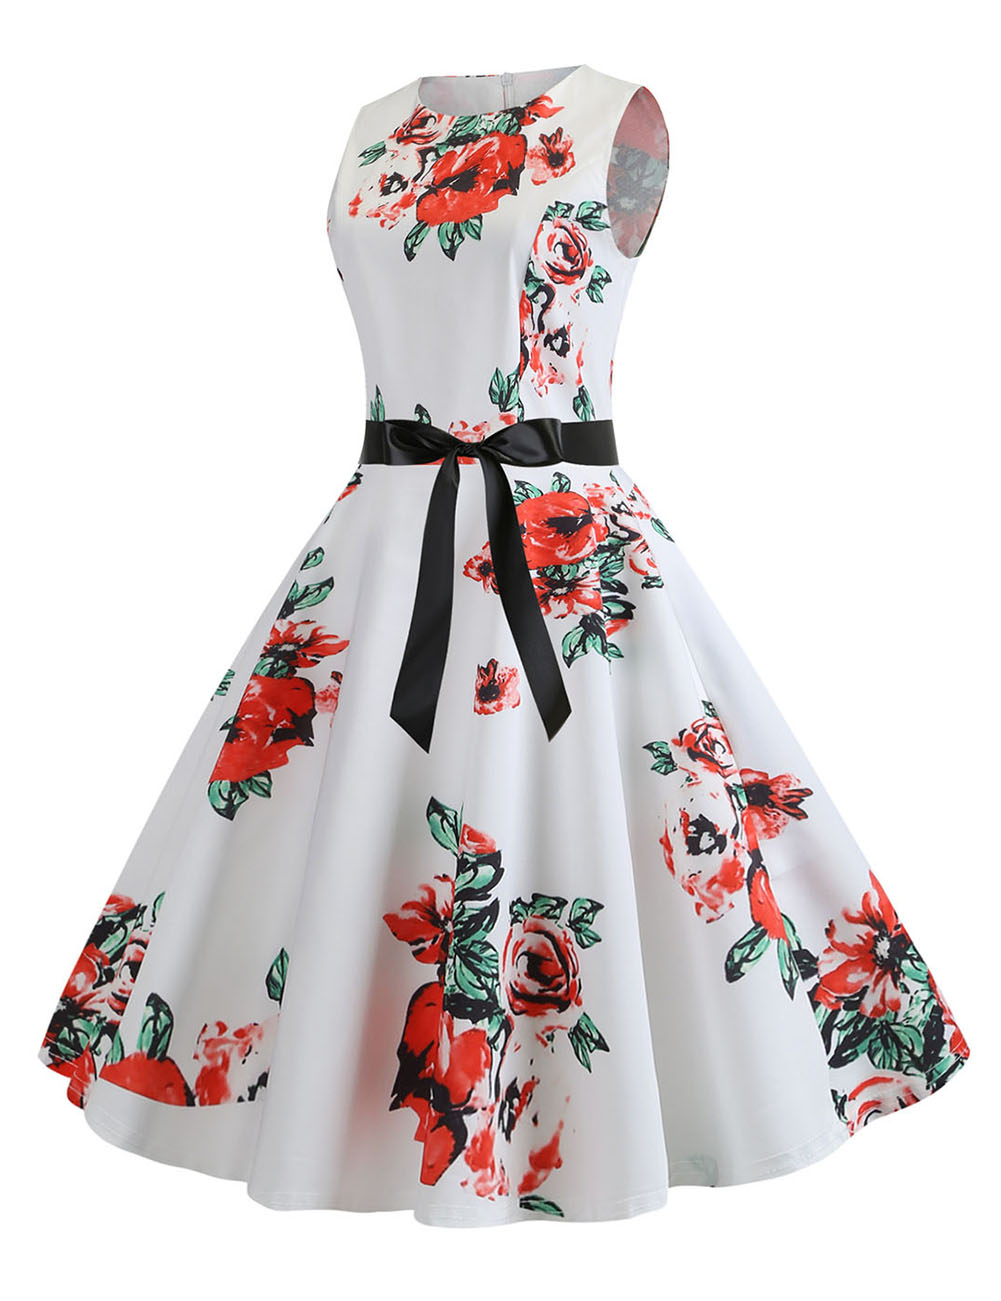 //cdn.affectcloud.com/hexinfashion/upload/imgs/Dress/Midi_Dress/VZ190452-M01/VZ190452-M01-201911055dc120a61b9d5.jpg